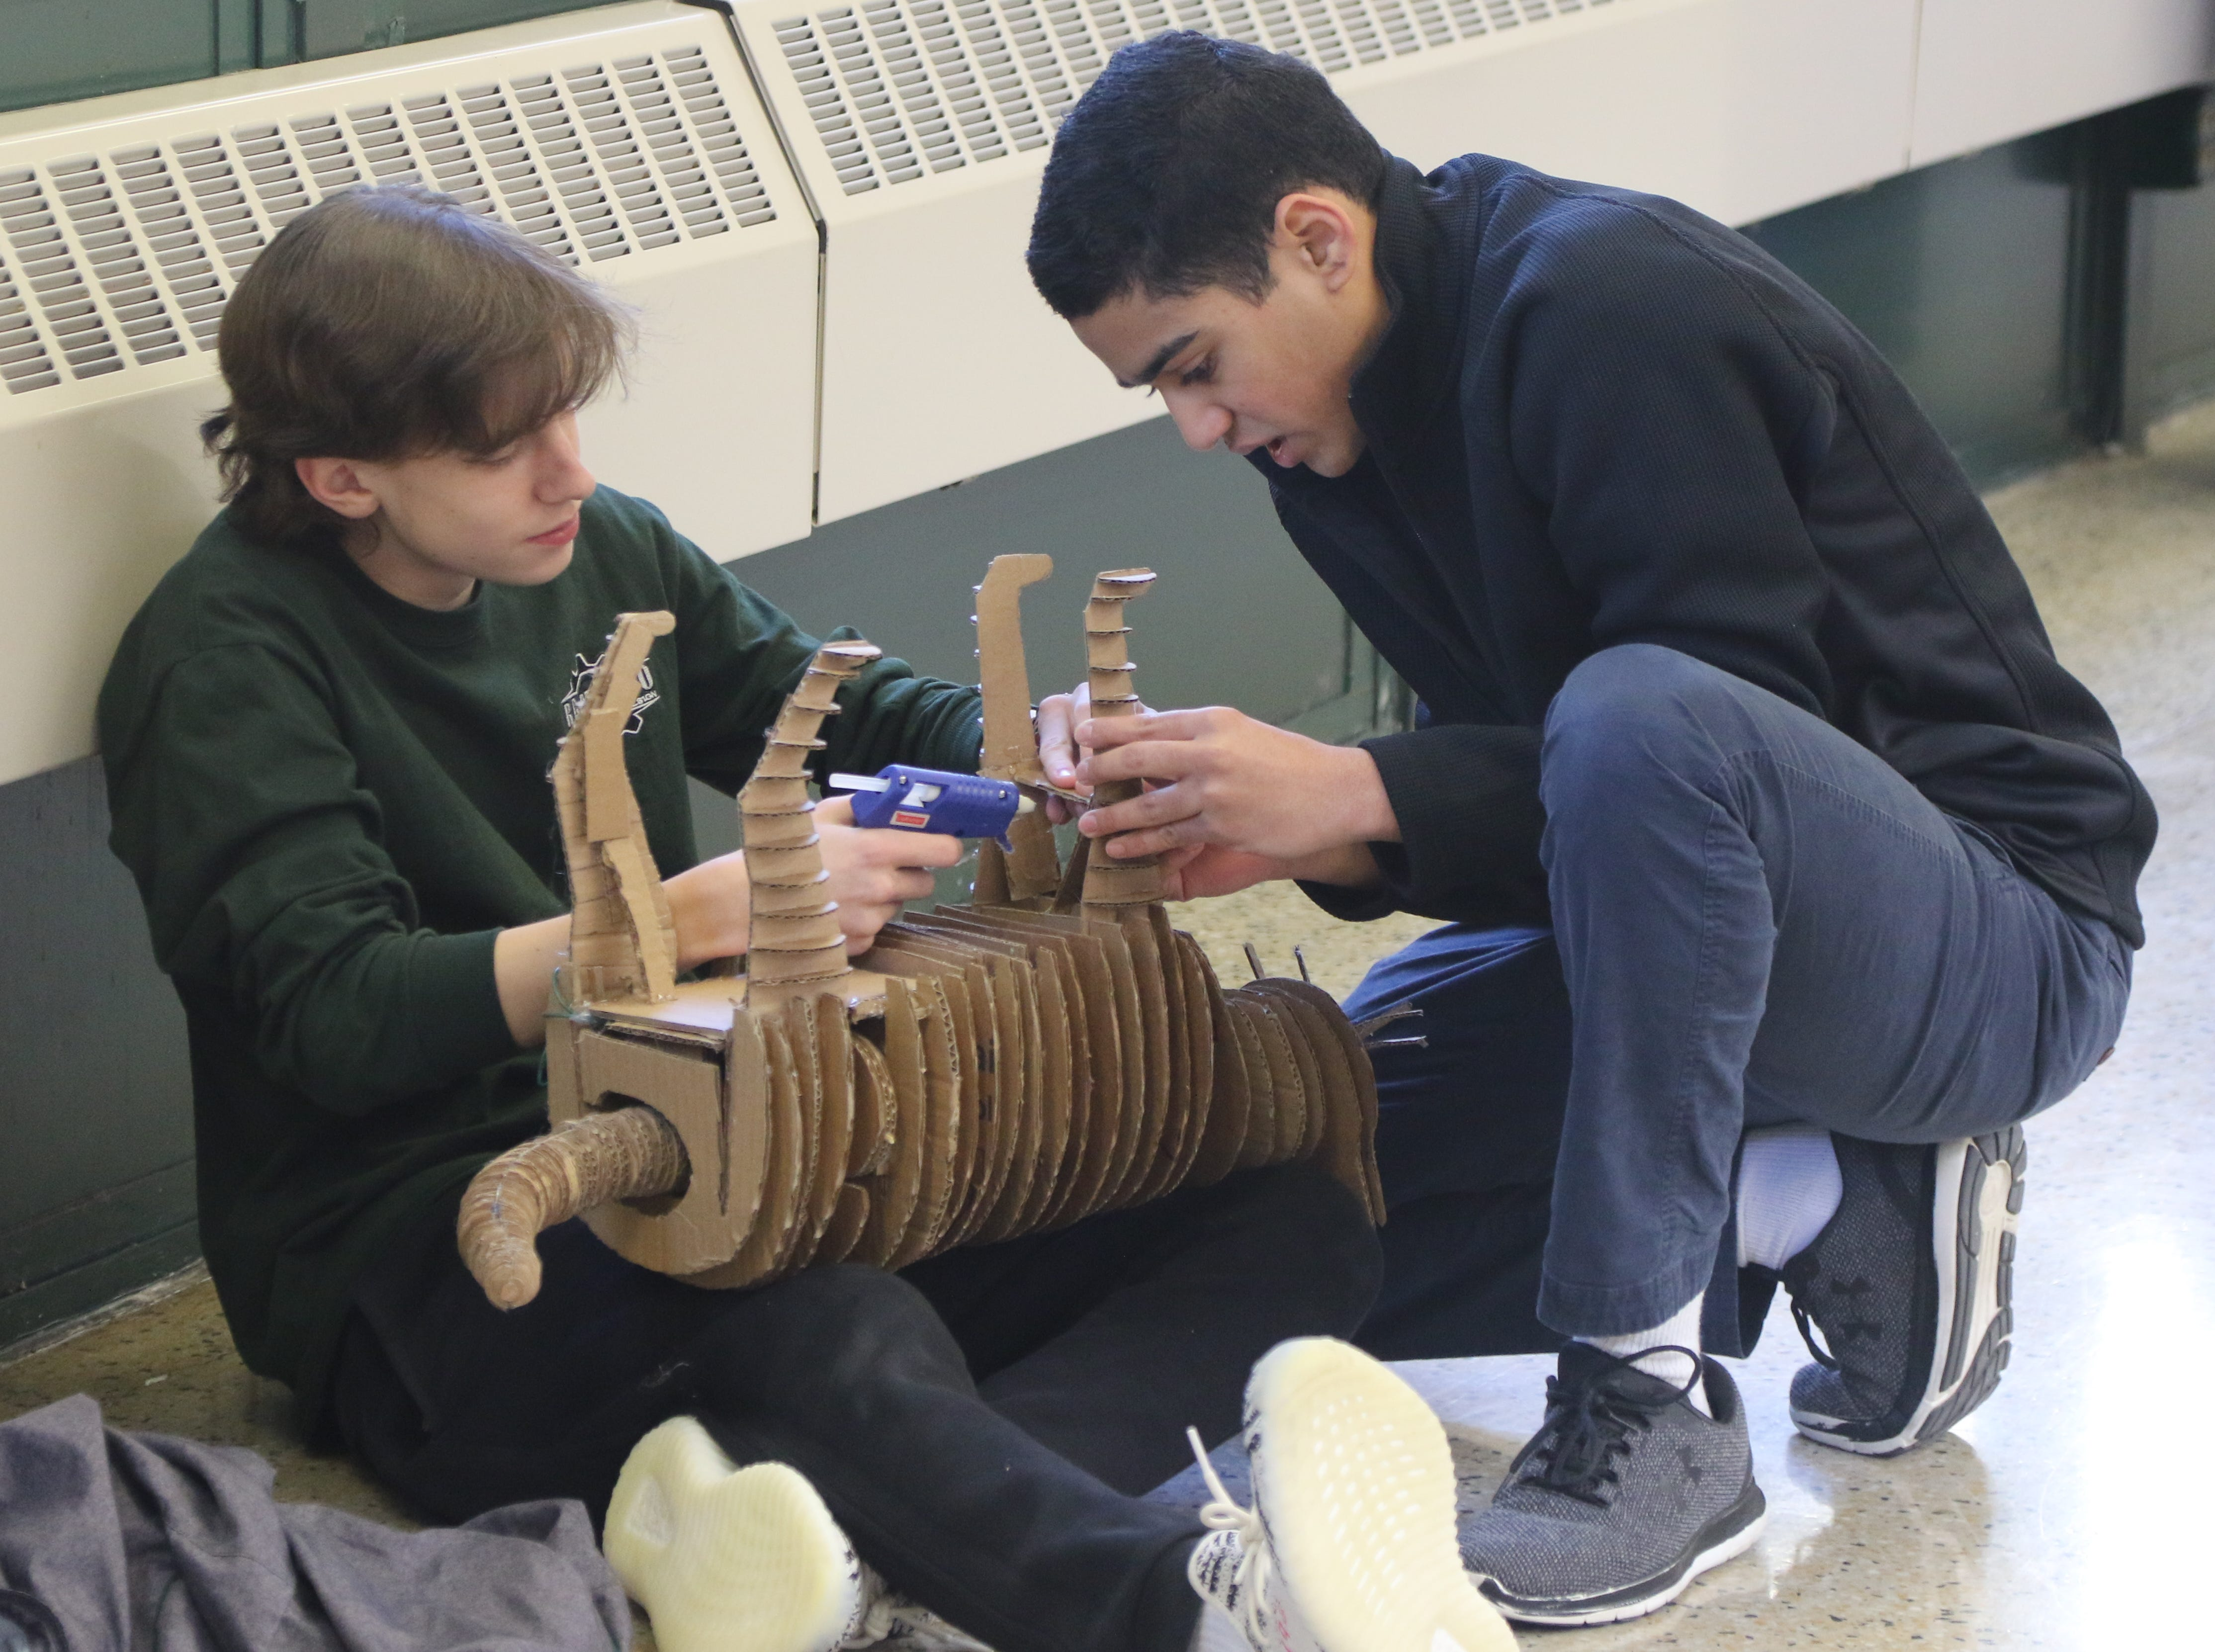 Sophomores, William Bergquist and Ian Viegas work on the final touches of Viegas' motorized tail wagging cat. This cat is made from cardboard and has a motorized tail that wags as part of the Cardboard Animal-a-thon at Ramapo HS where engineering students work on and display their projects, making mechanical animals out of cardboard. They also helped younger students work on projects during the event held at Ramapo HS on February 9, 2019.